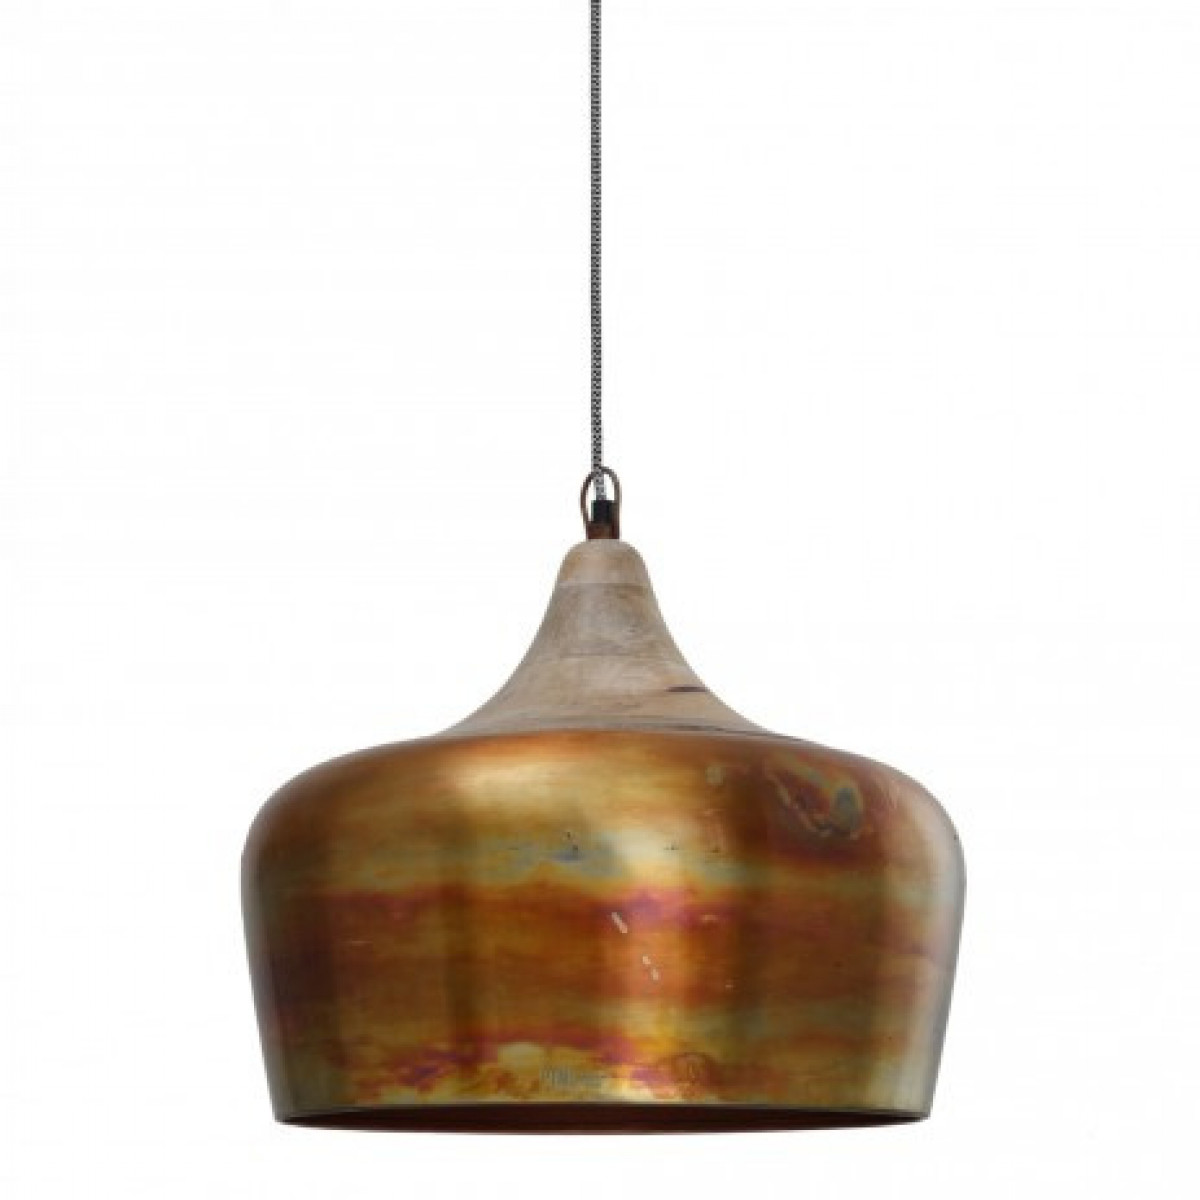 PTMD Danish Copper Iron Smooth Hanglamp (672098)